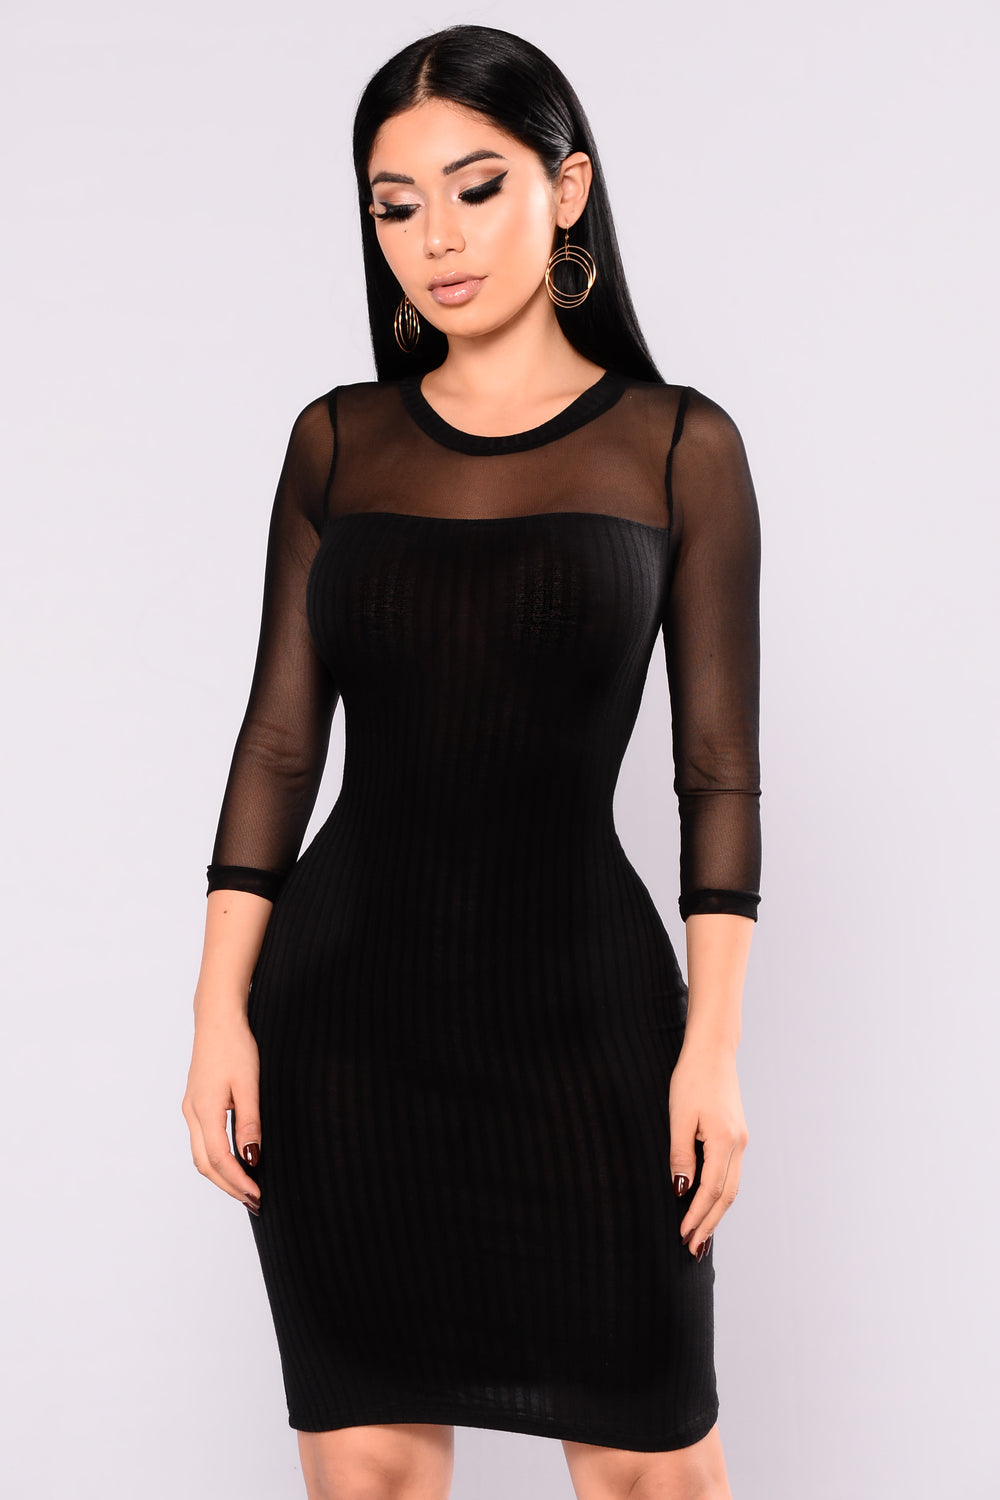 Gianna Mesh Dress - Black